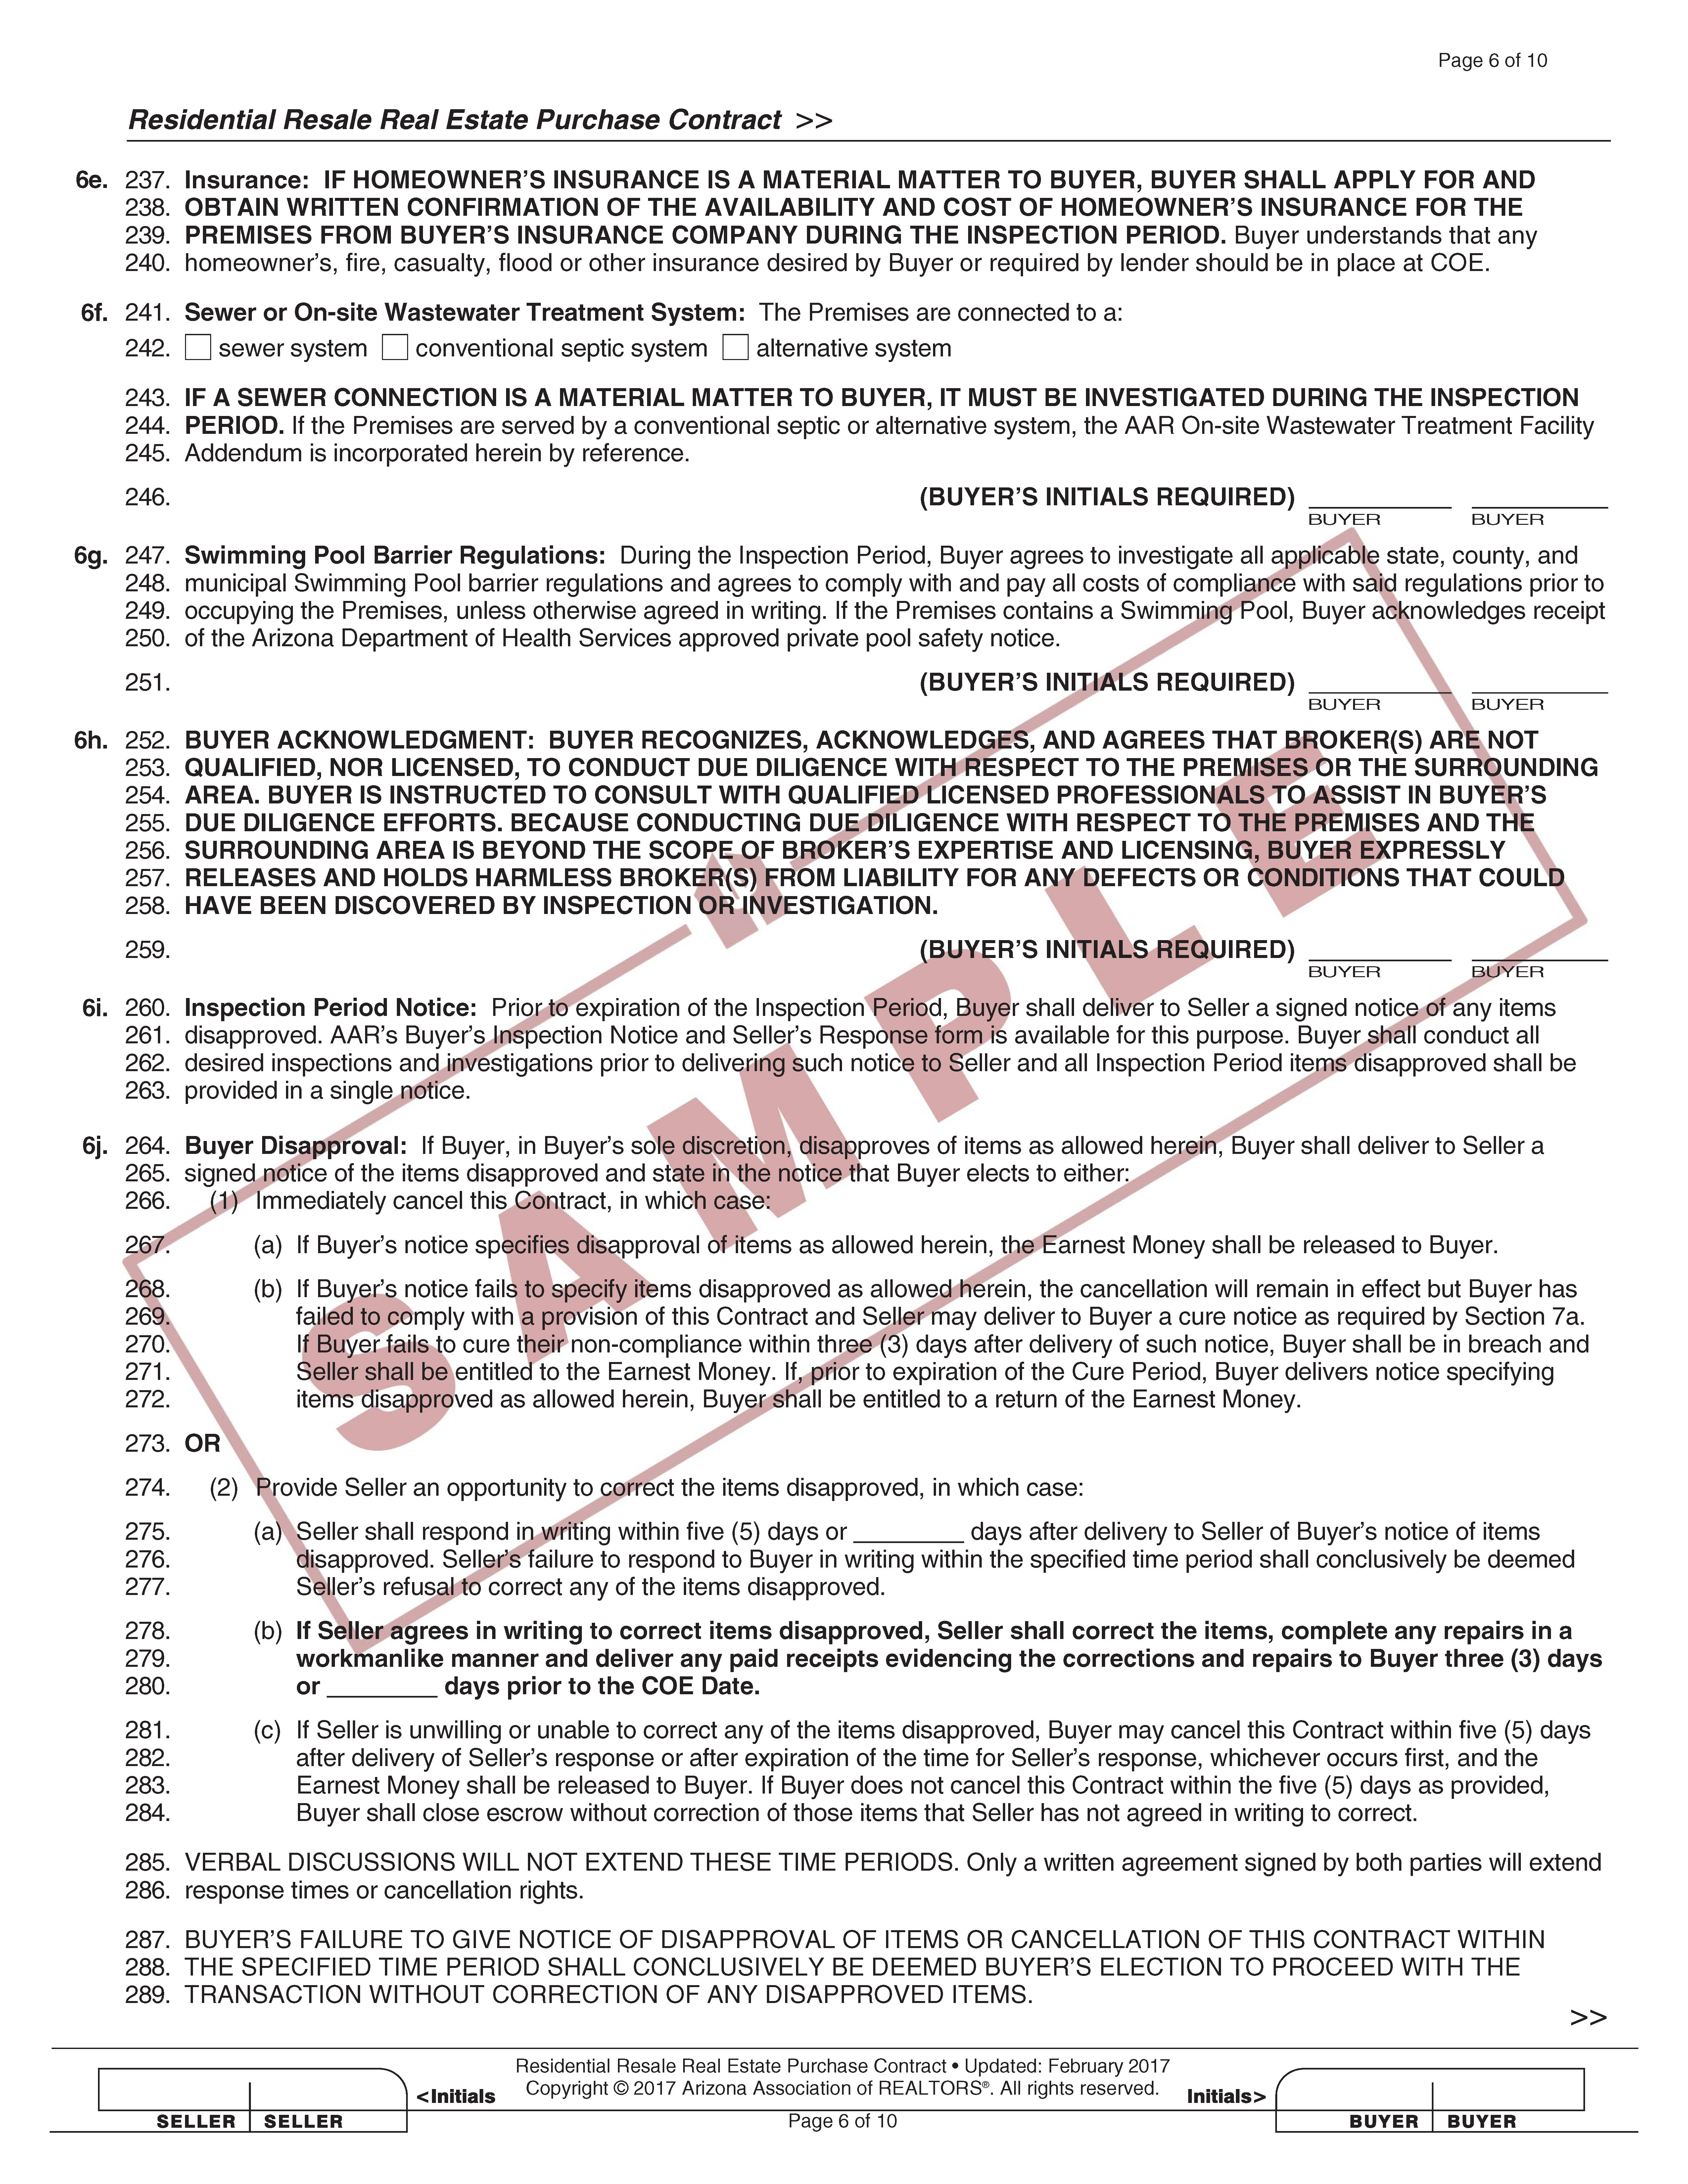 residential_resale_real_estate_purchase_contract_form_2-2017-sample_page_07